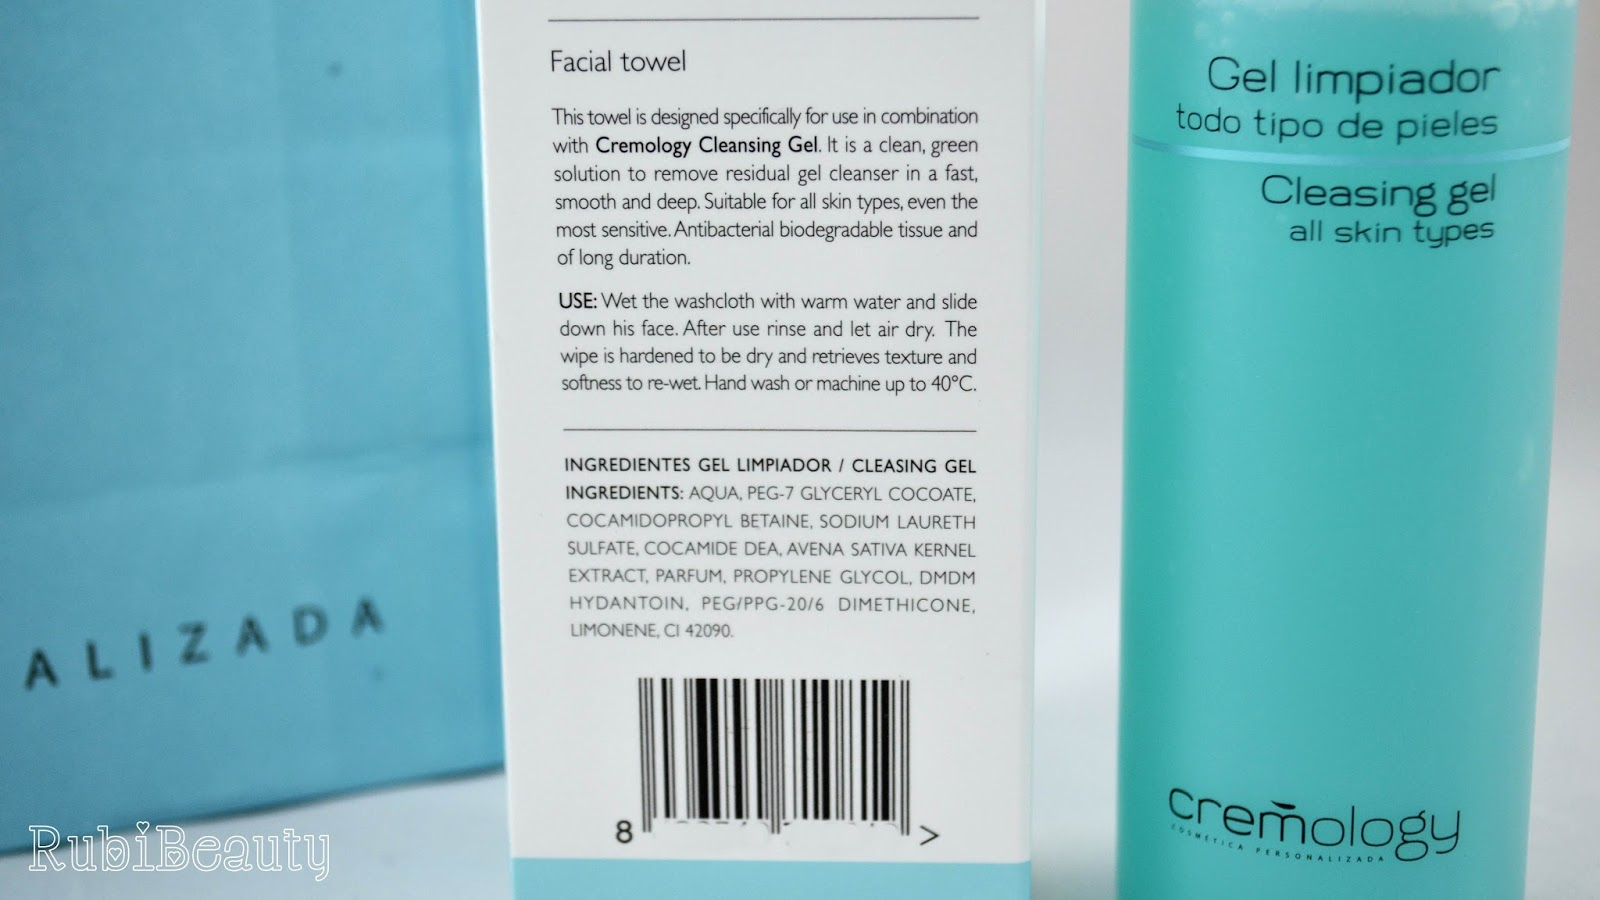 rubibeauty review opinion cremology gel limpiador rutina facial personalizada ingredientes